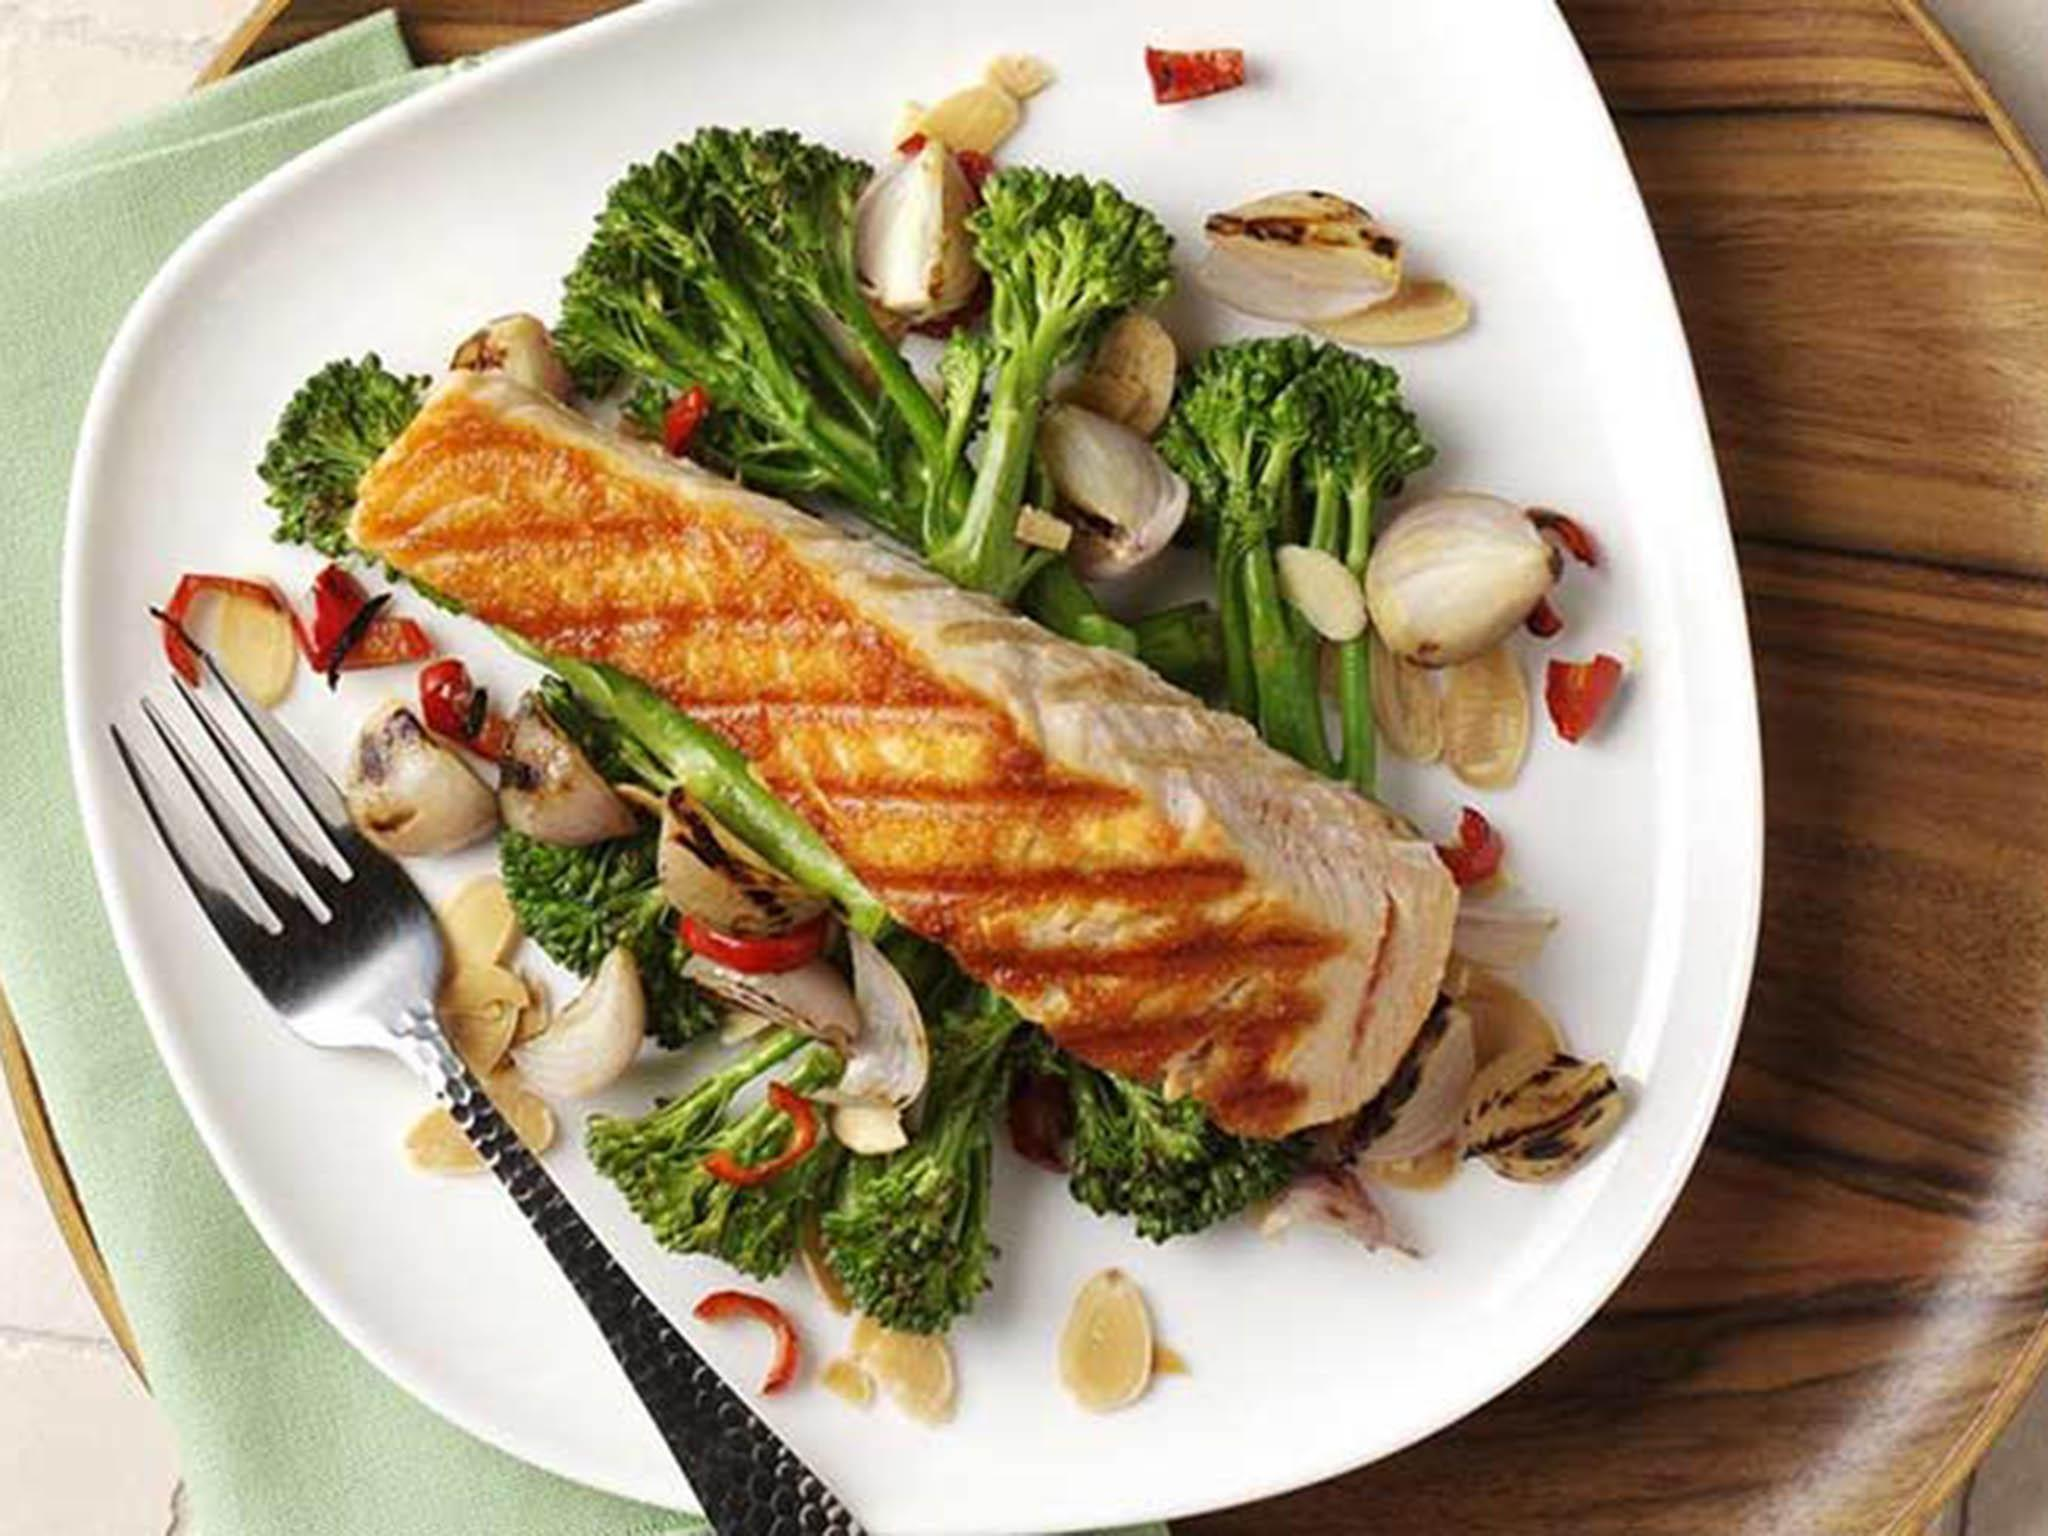 How to make griddled salmon with broccoli, shallot and chilli stir-fry 1